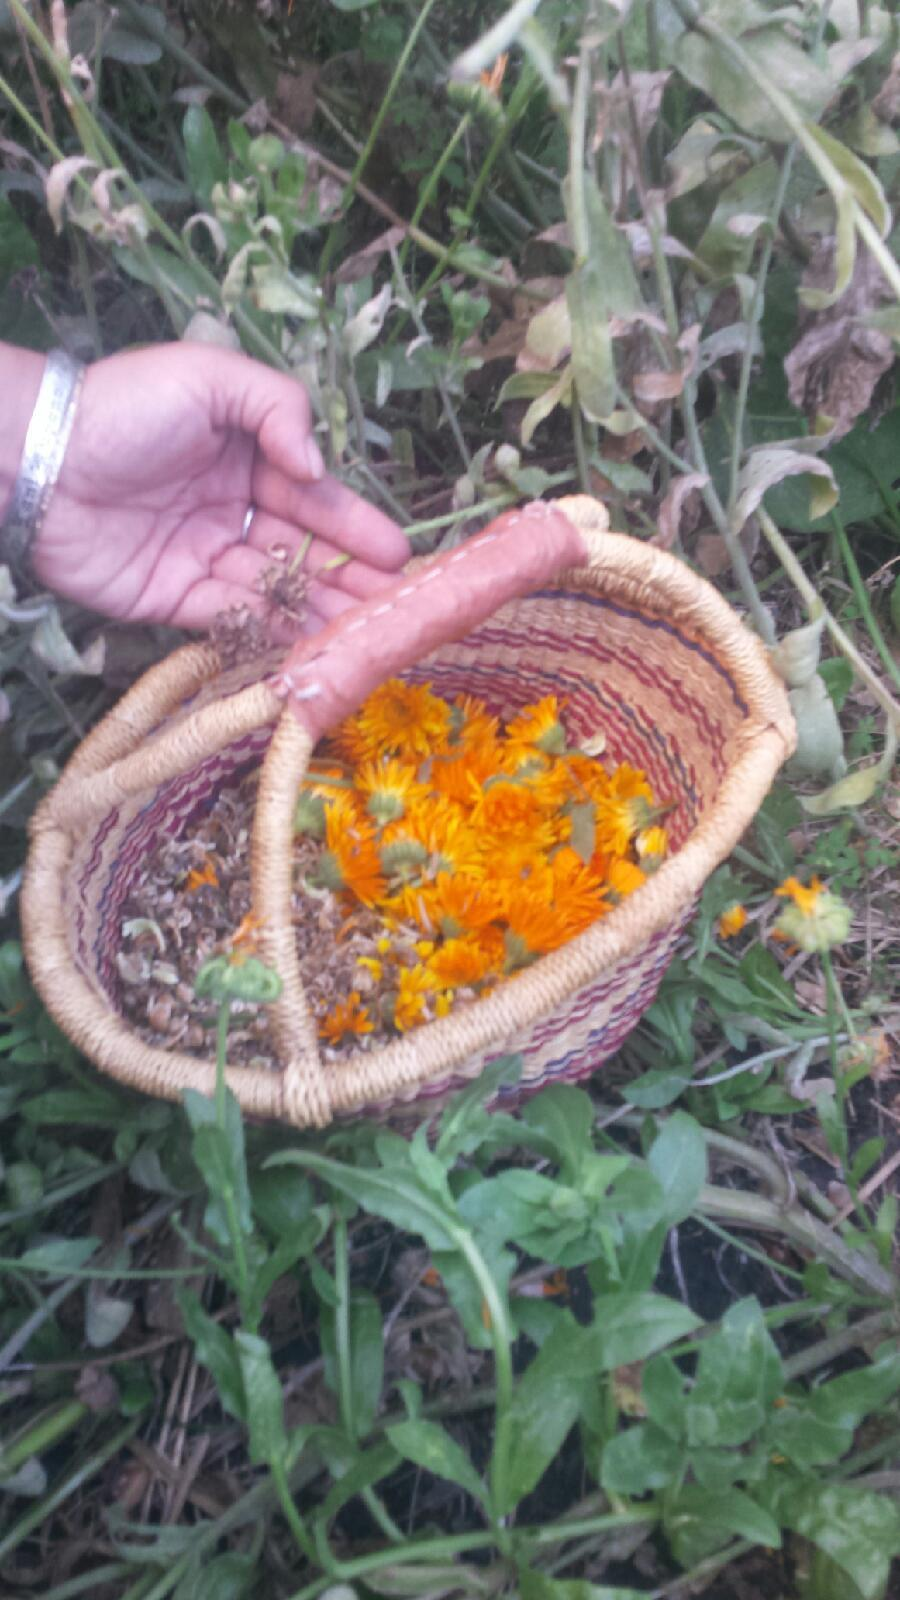 Basket of calendula flowers and seeds